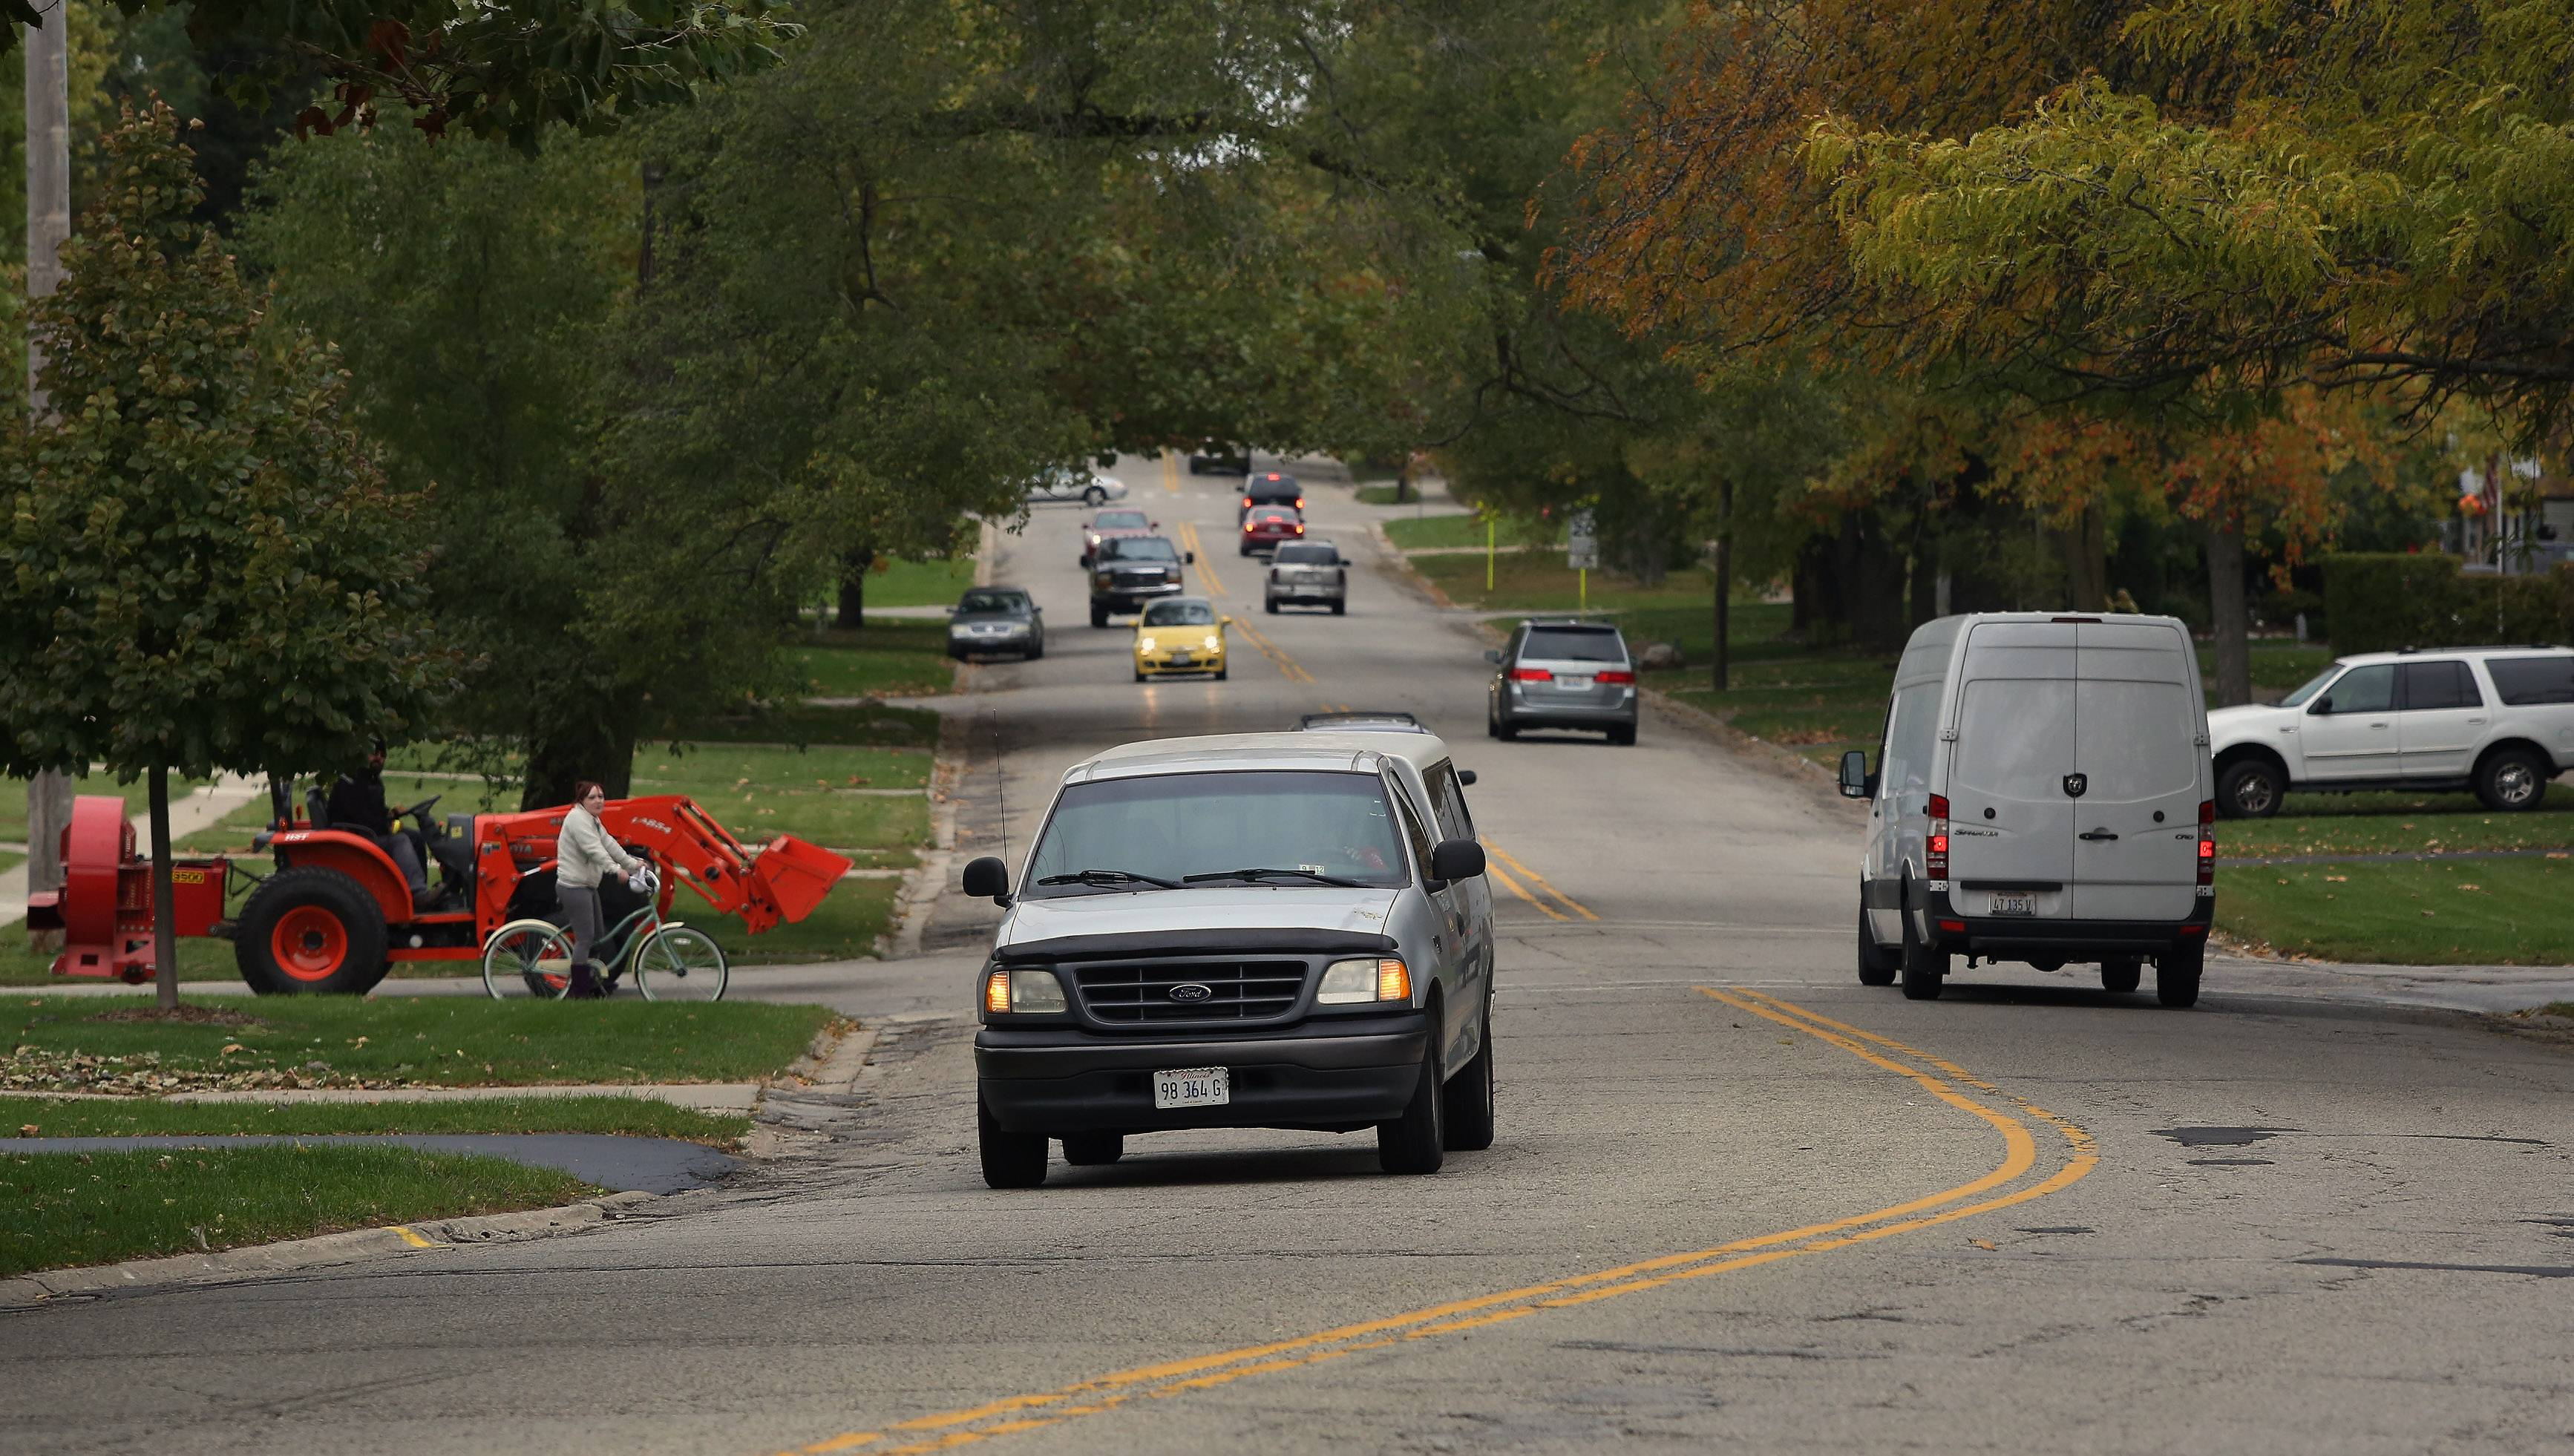 Hawley Street widening in Mundelein expected to begin in earnest this summer